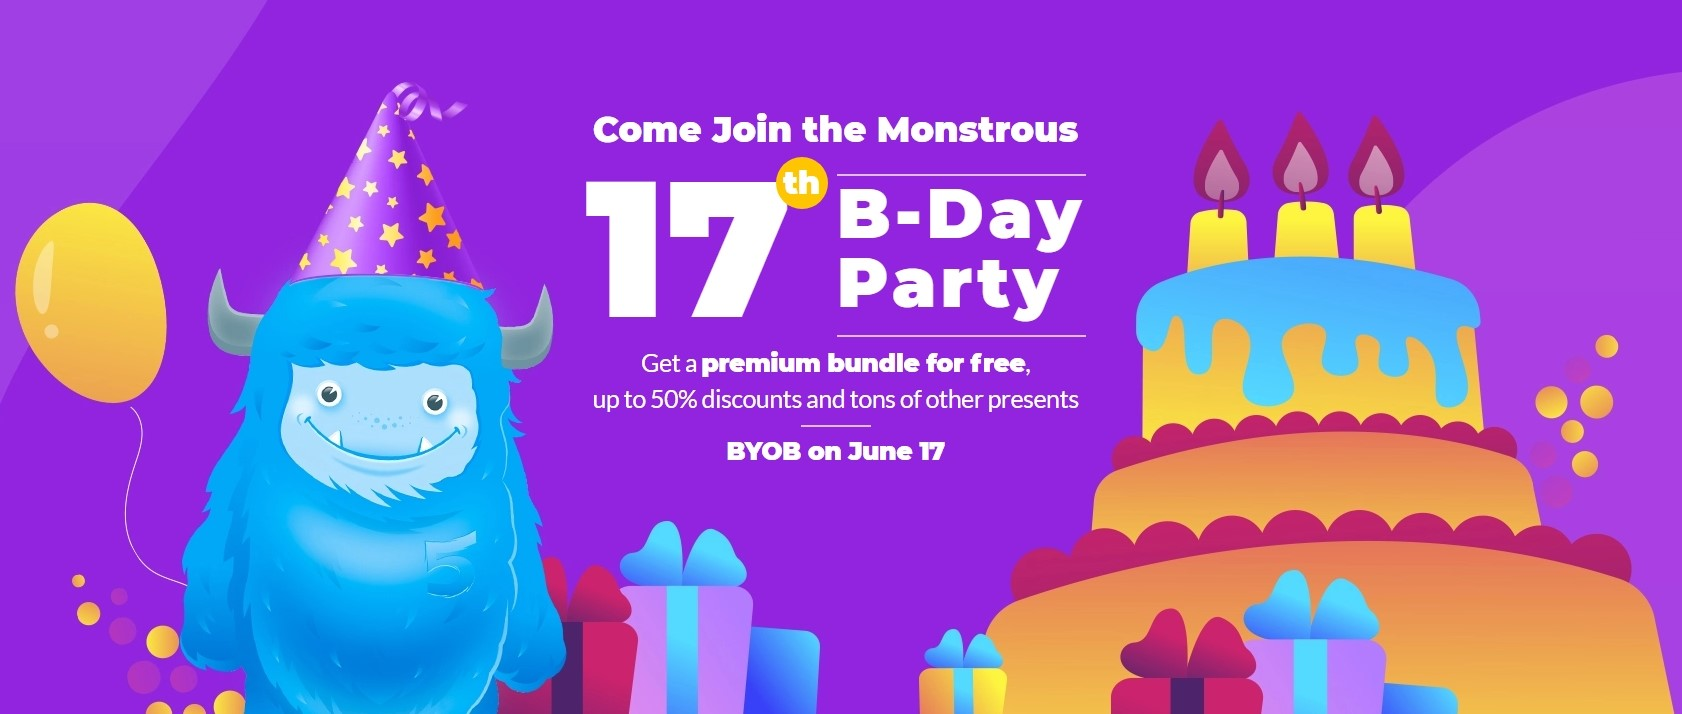 Celebrate Monstrous Party and Get Presents